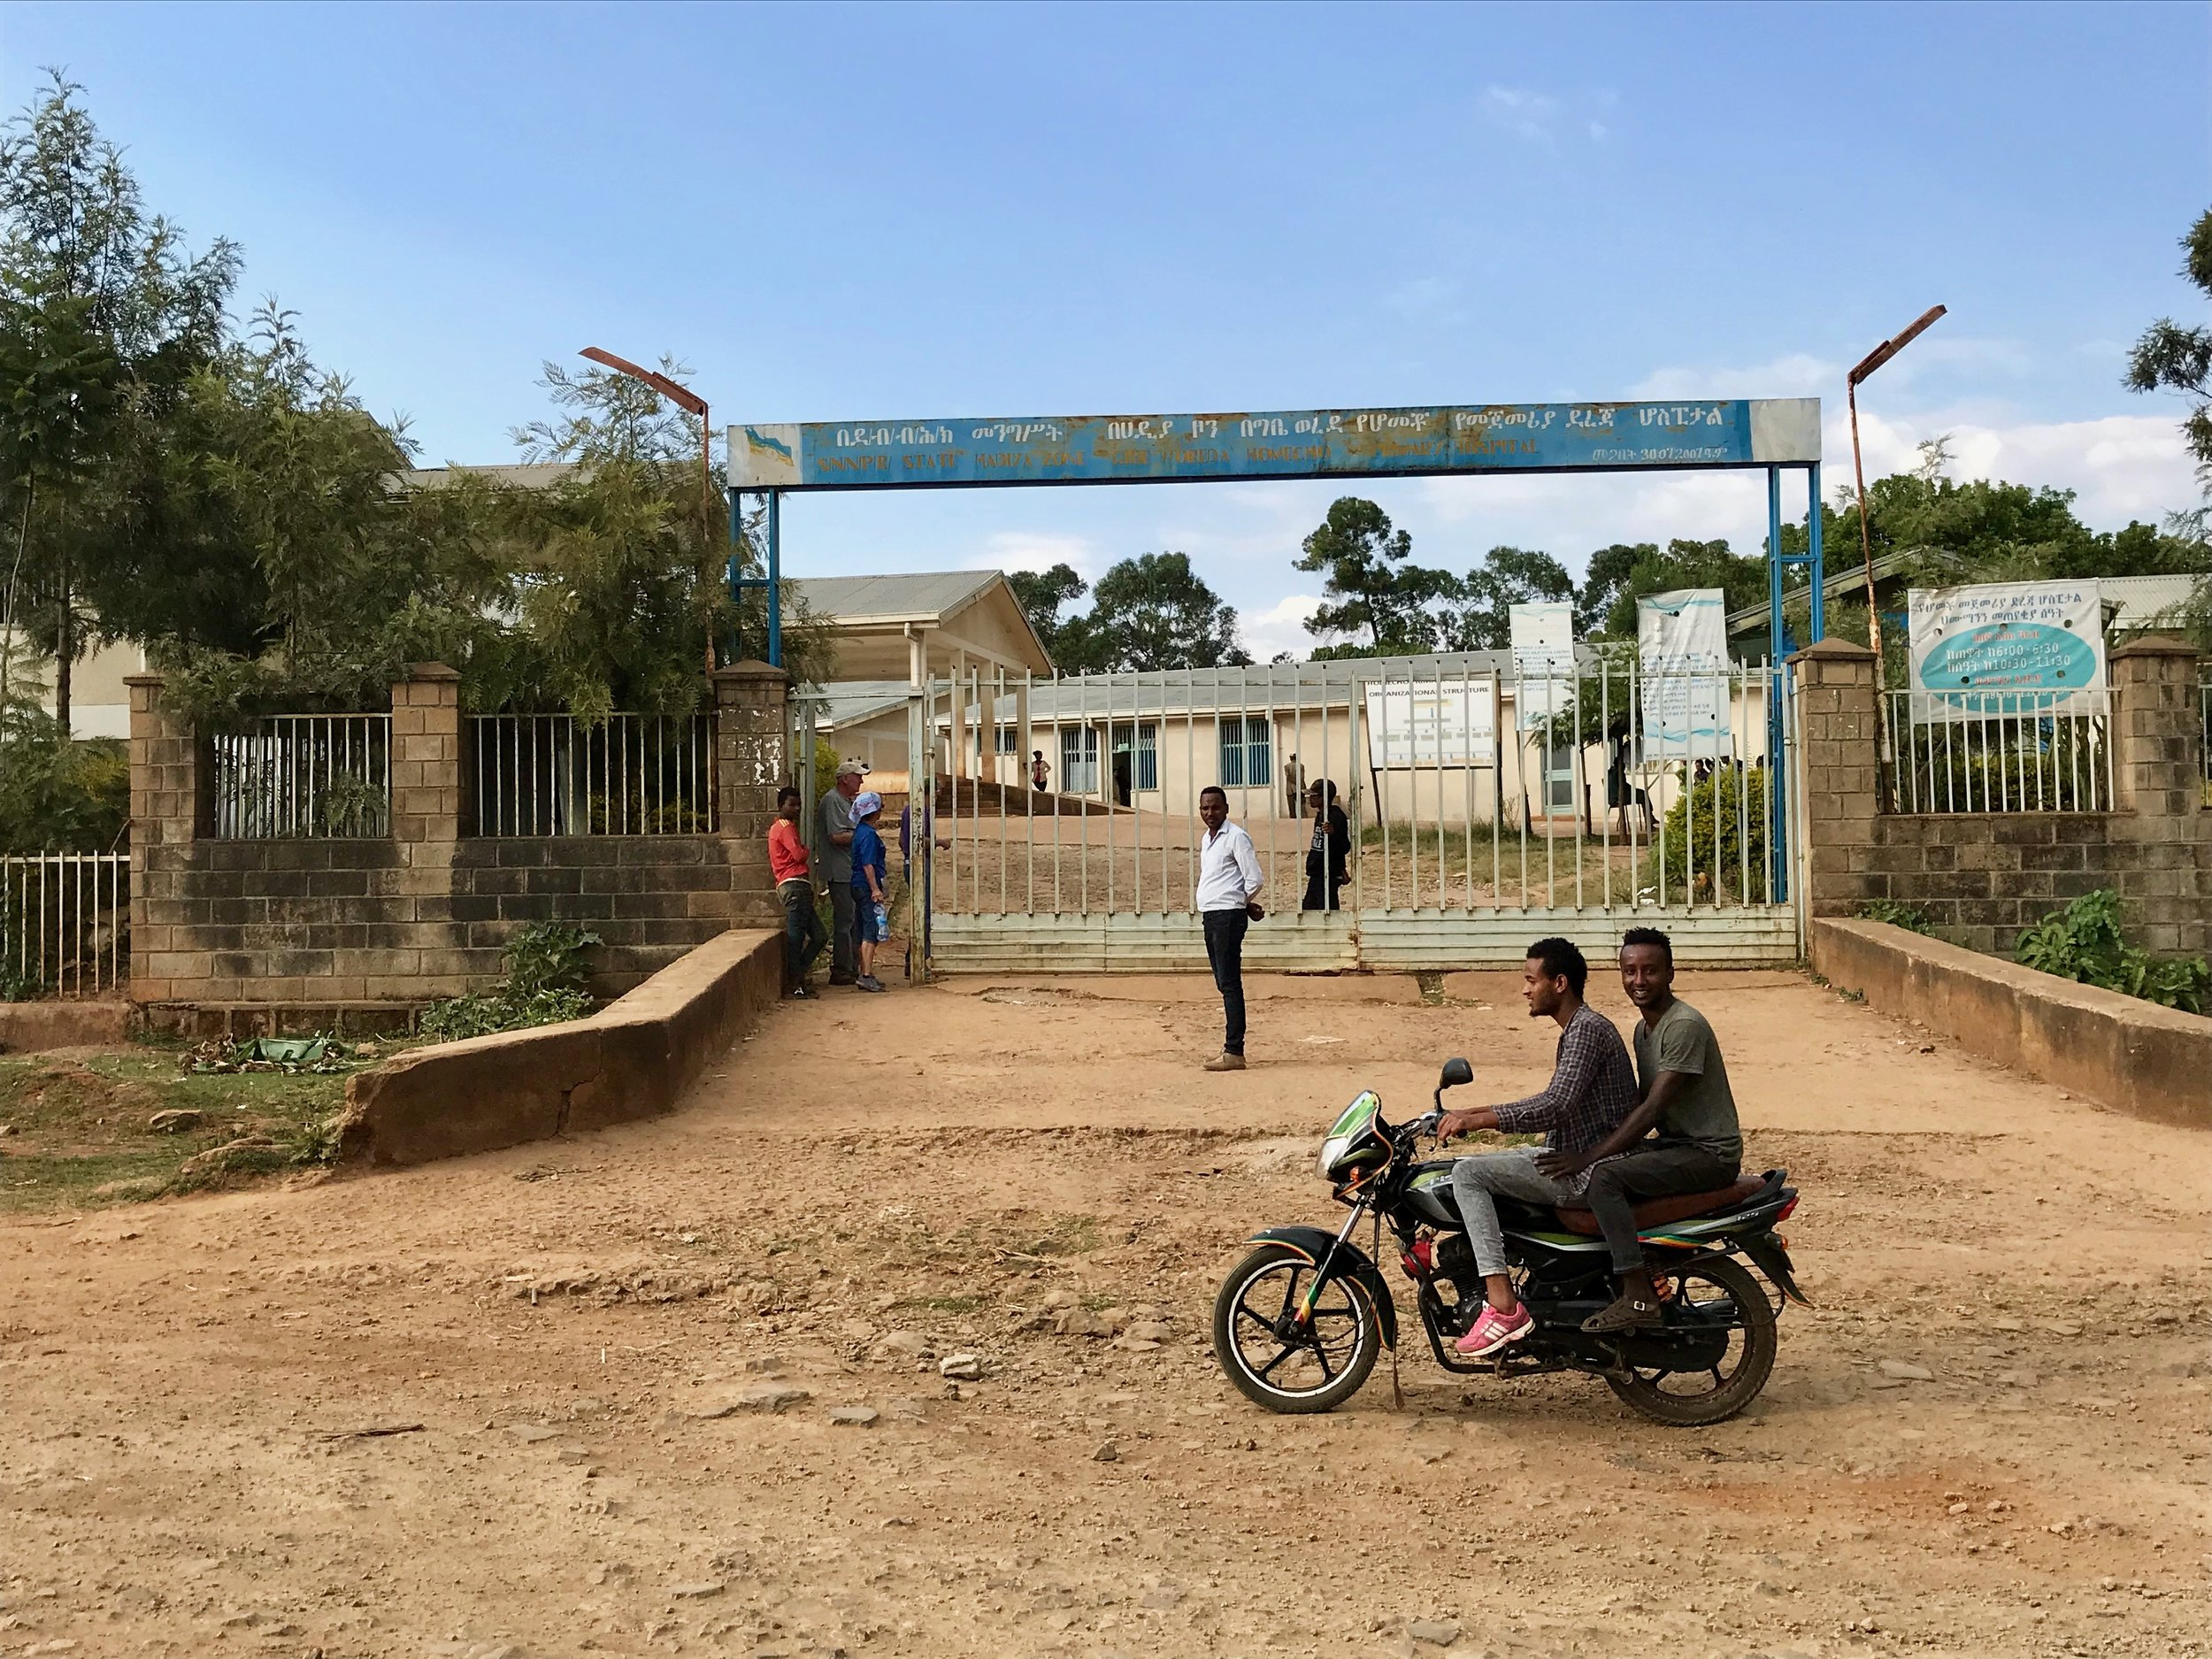 The gate outside the clinic in Homacho.